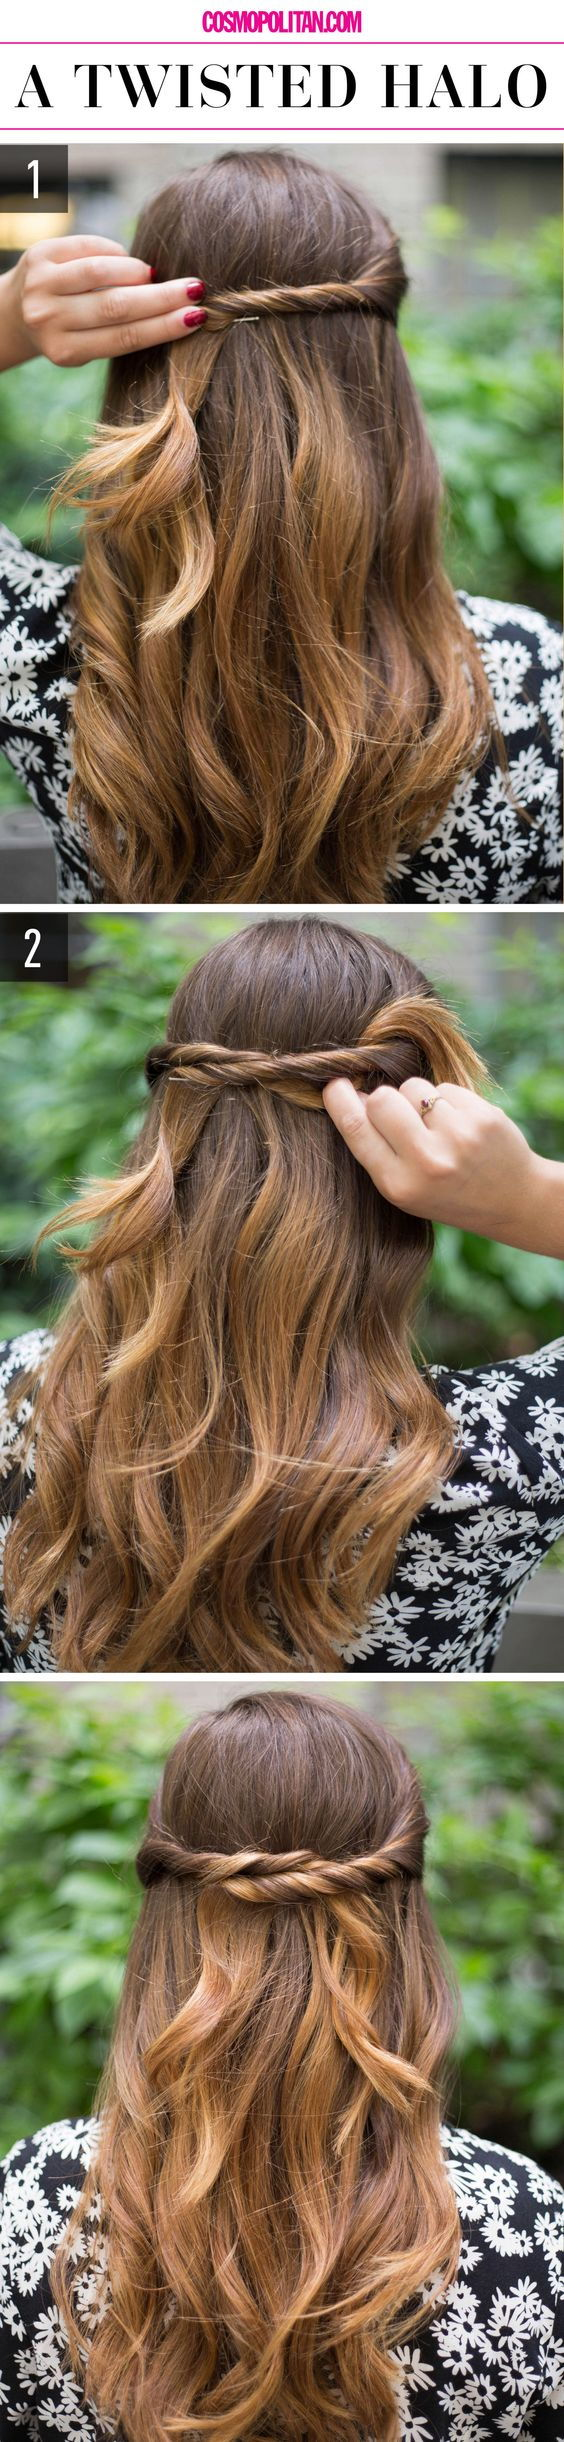 hair twist halo